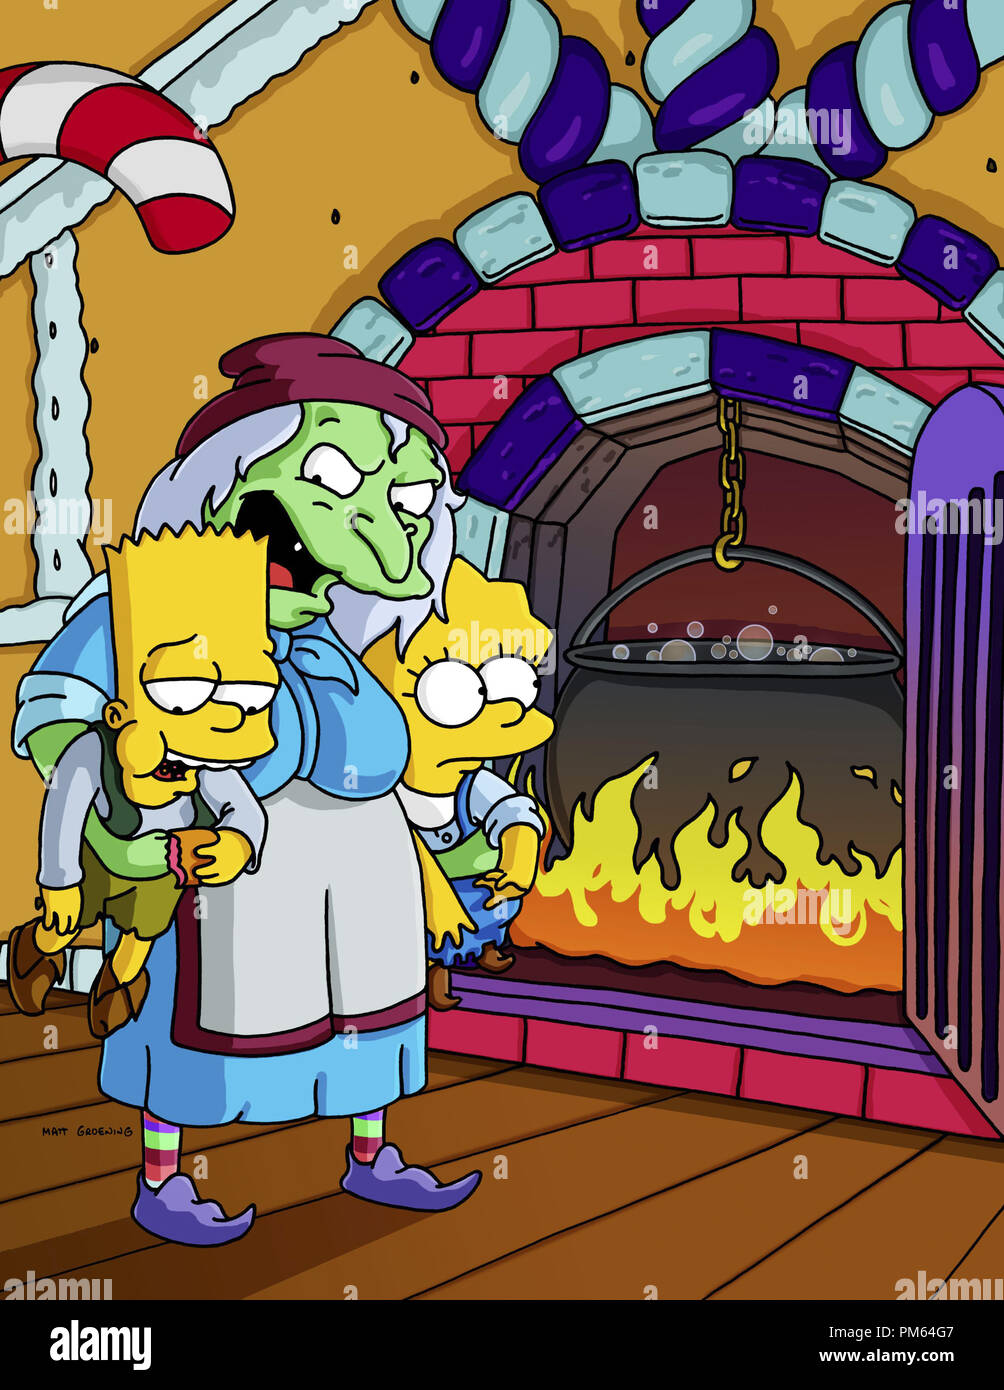 Film Still Publicity Stills From The Simpsons Episode Treehouse Of Horror Xi Bart Simpson Lisa Simpson November 1 2000 File Reference 30846099tha For Editorial Use Only All Rights Reserved Stock Photo Alamy